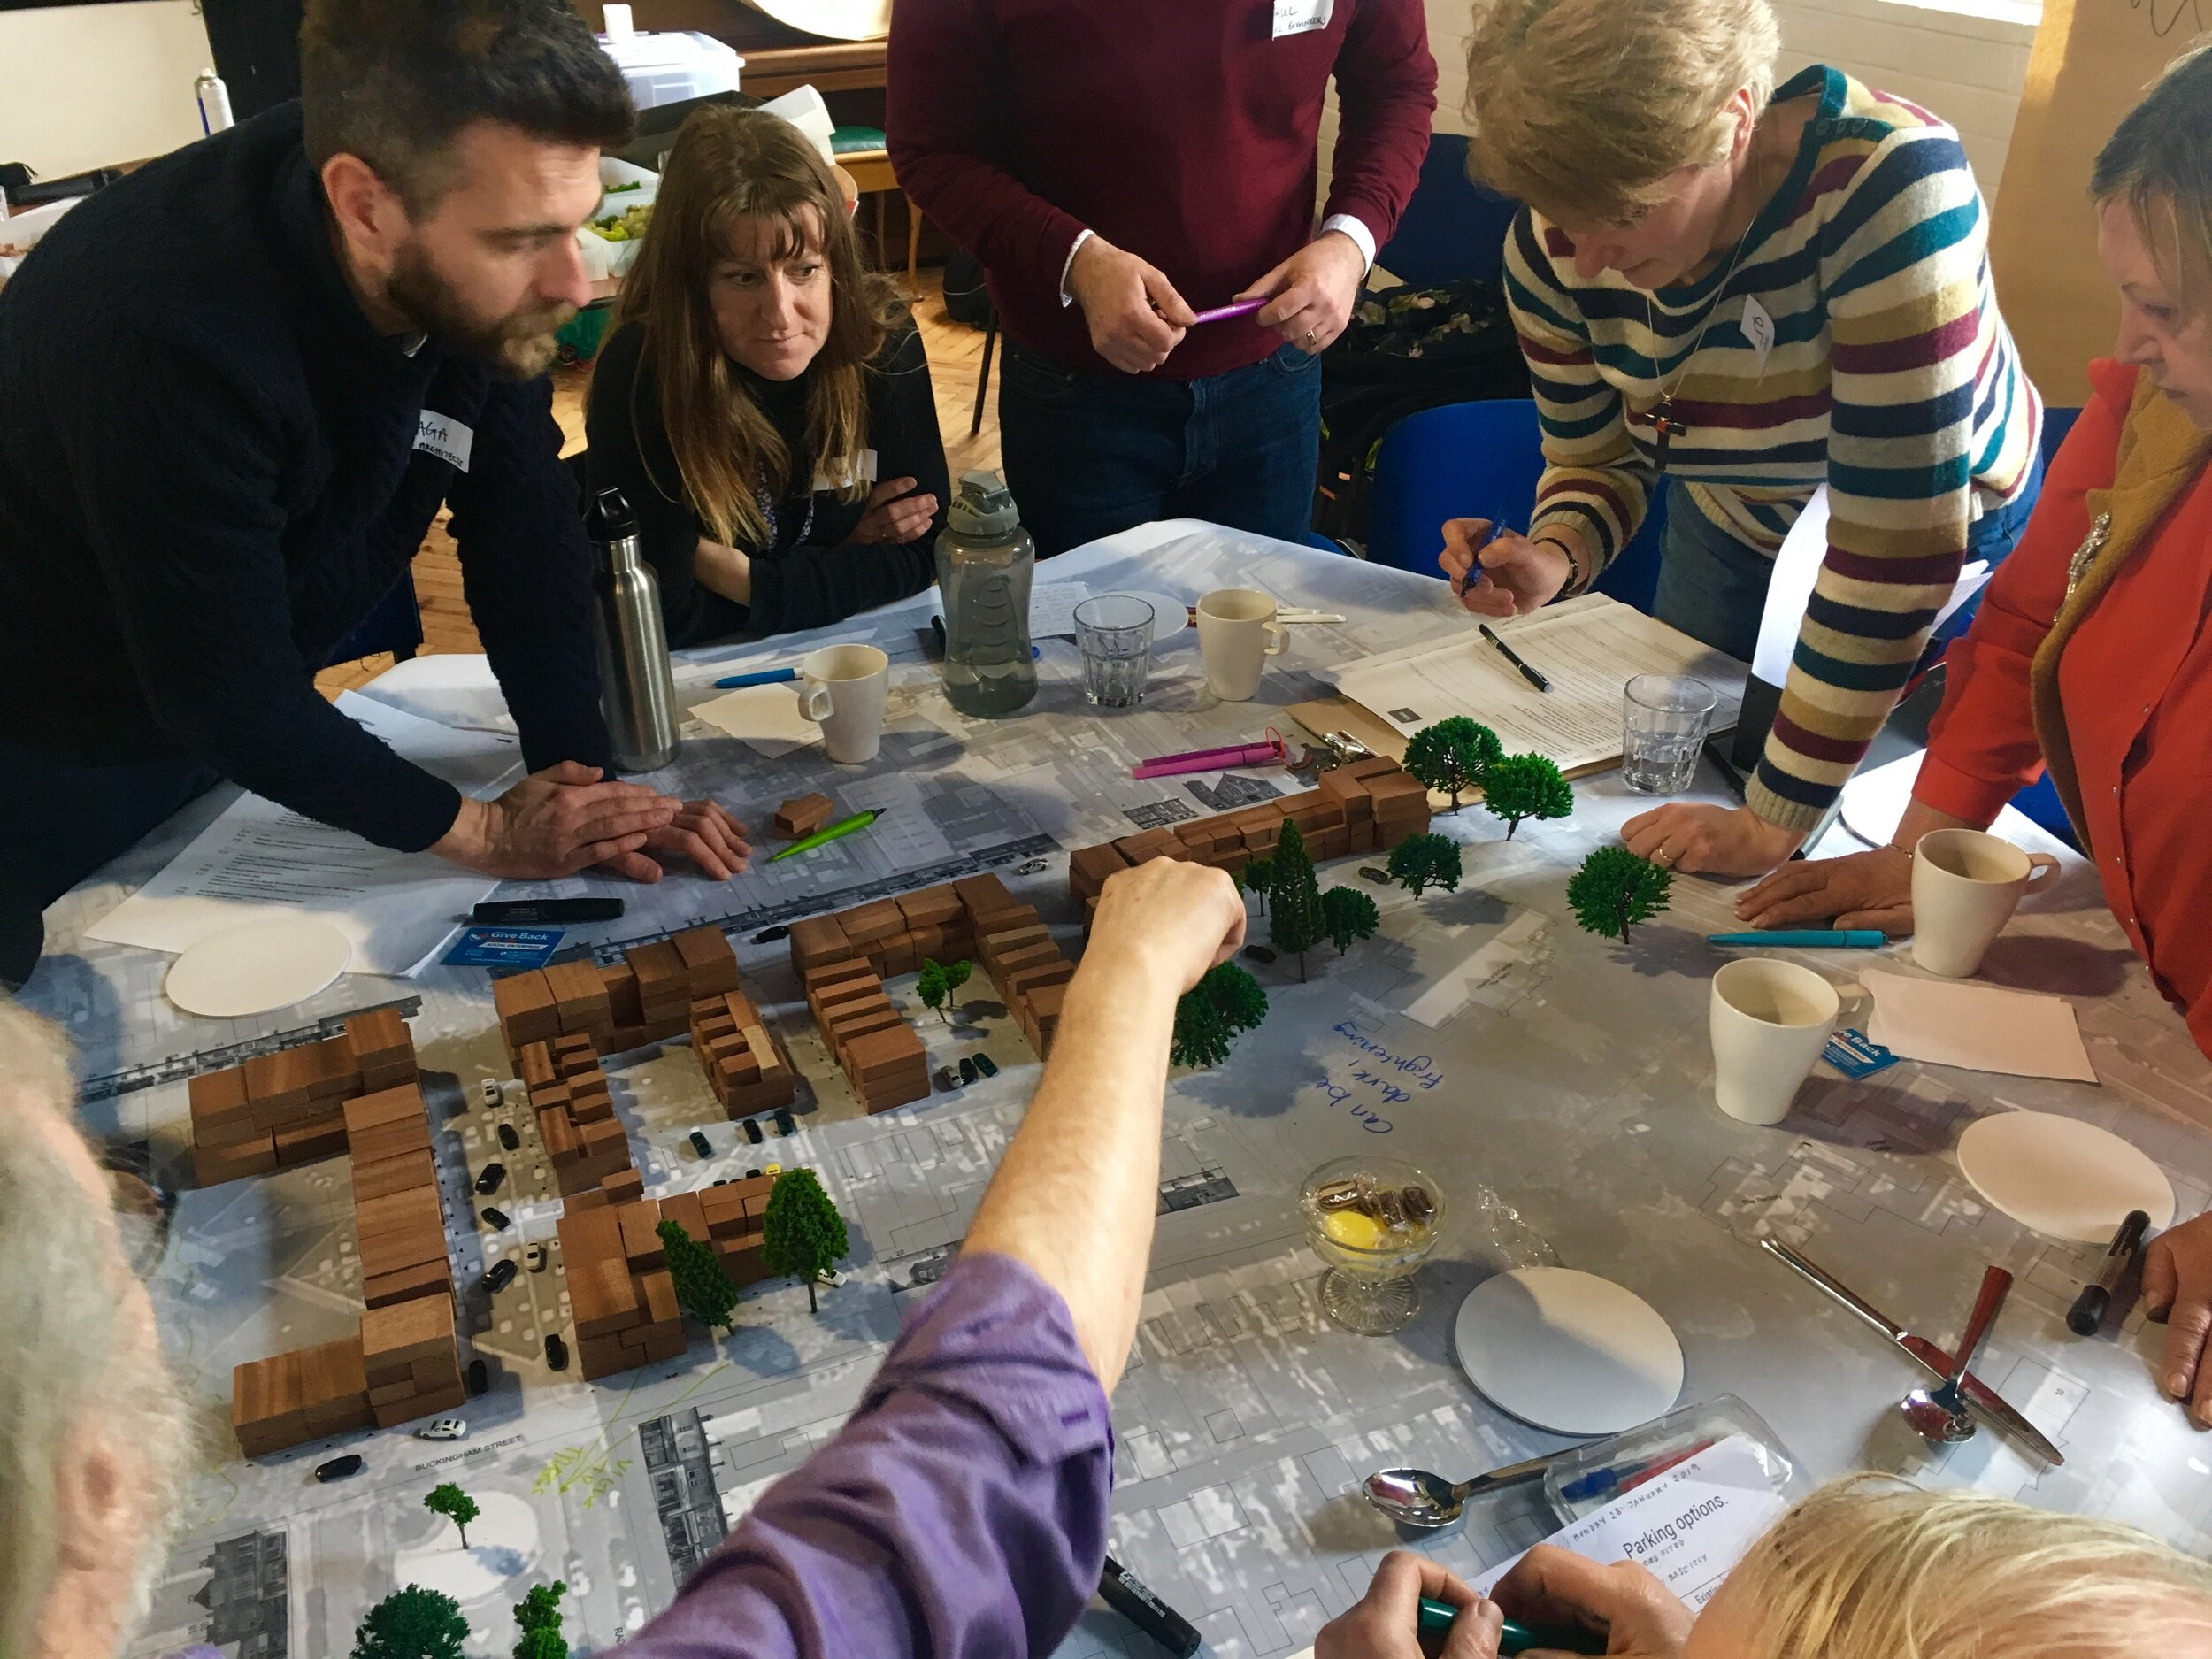 Collective prototyping in 3D | Making new streets, spaces and places with the neighbours